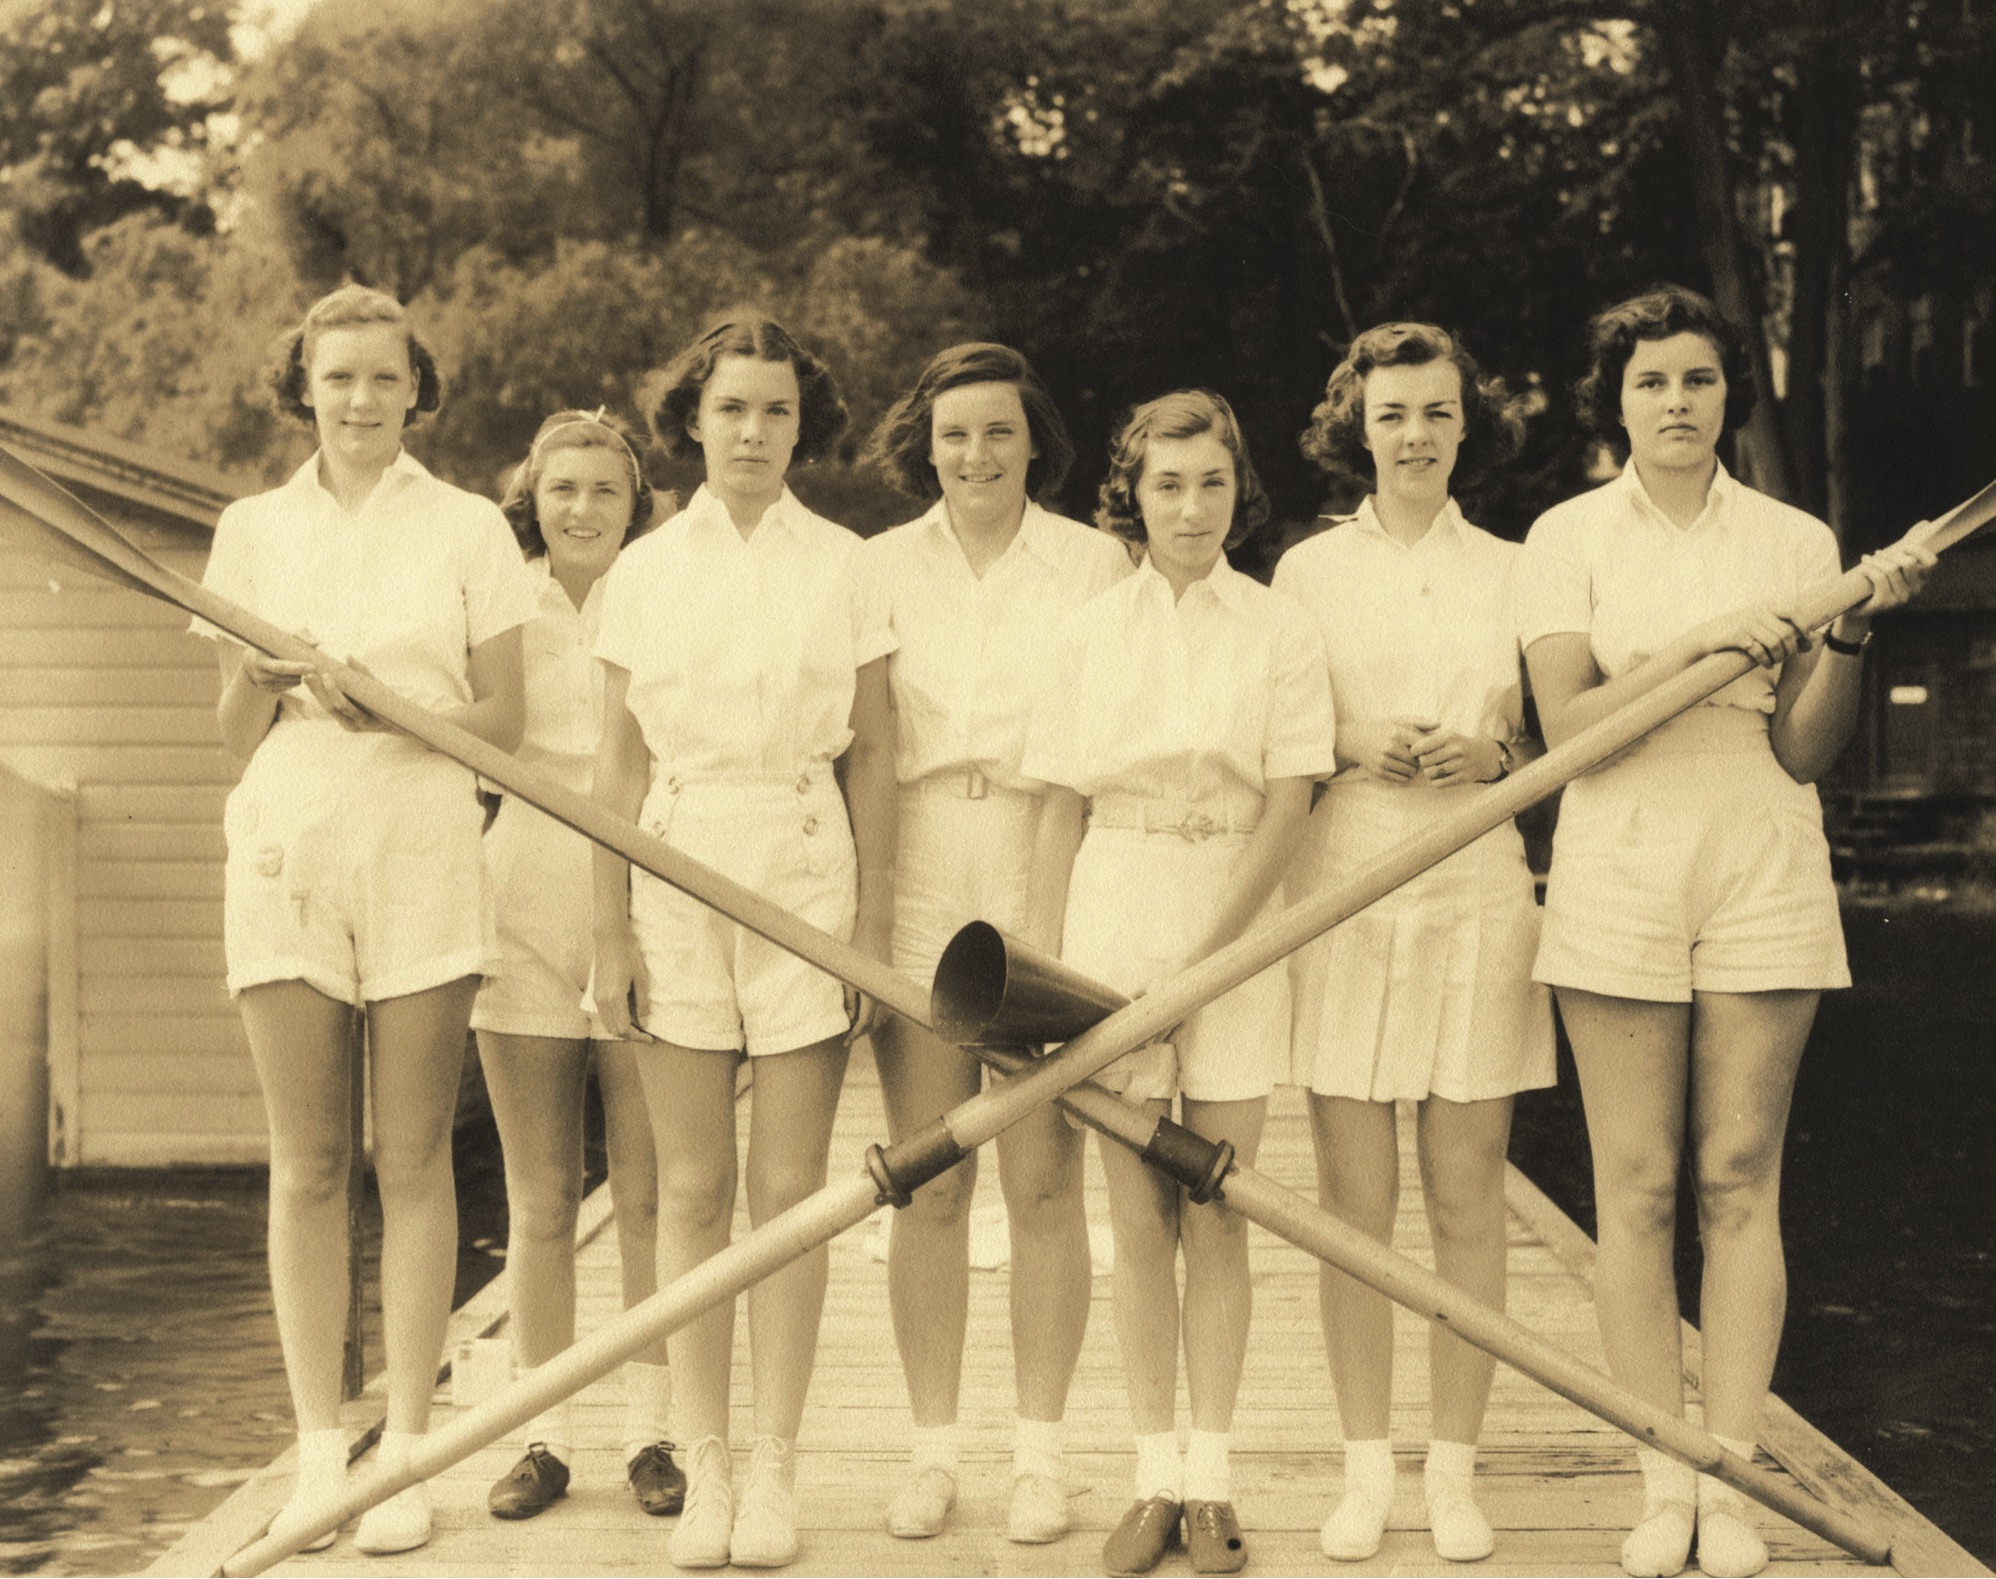 Dorris Forsbrey Sturges (third from right, with megaphone) stands with her Knox School crew in 1938.